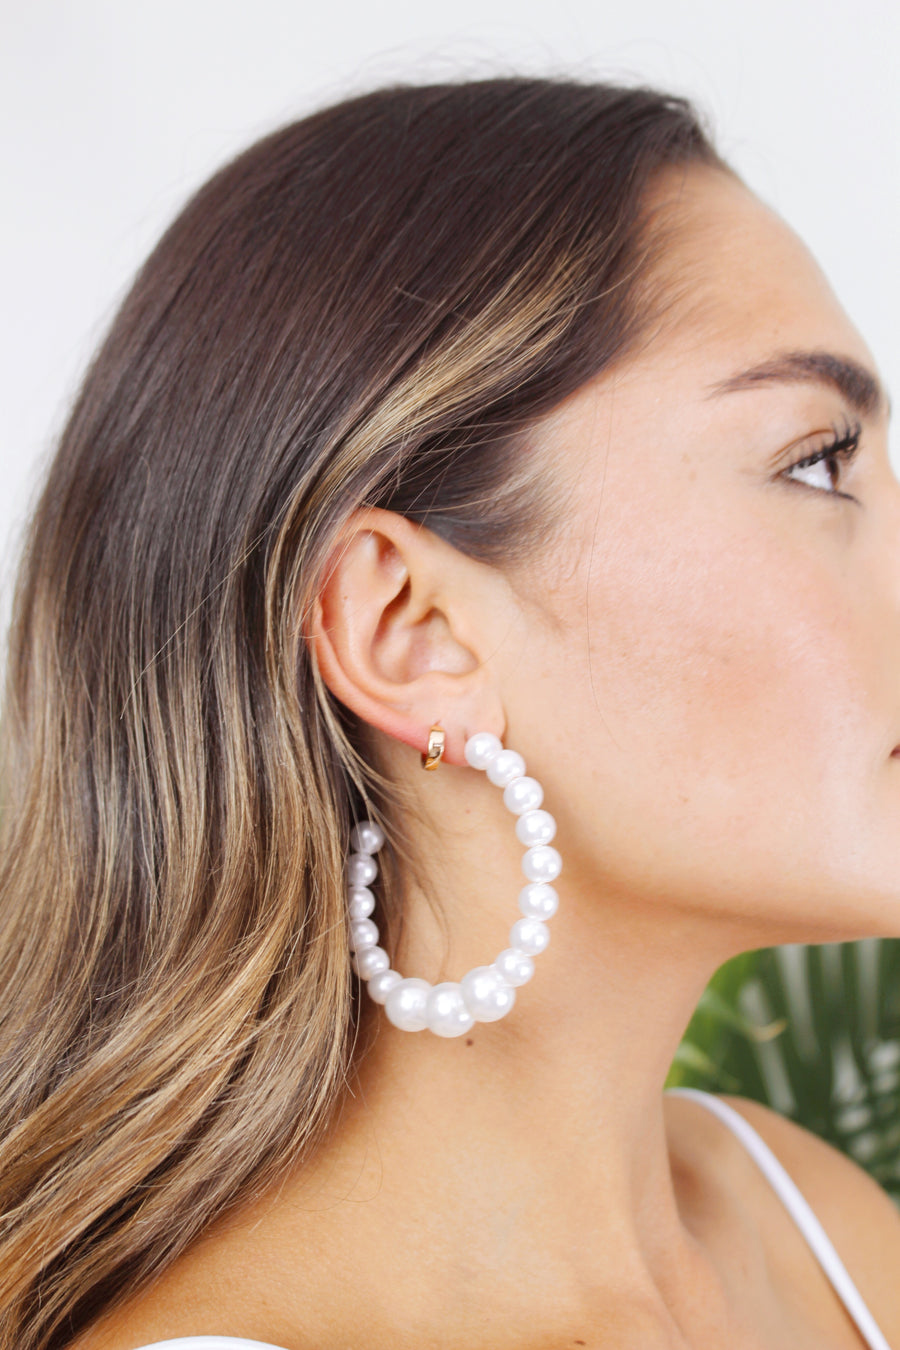 Aruba Large Pearl Hoop Earring - The Beach Bride by Chic Parisien, a destination for beach weddings, bachelorettes and honeymoons